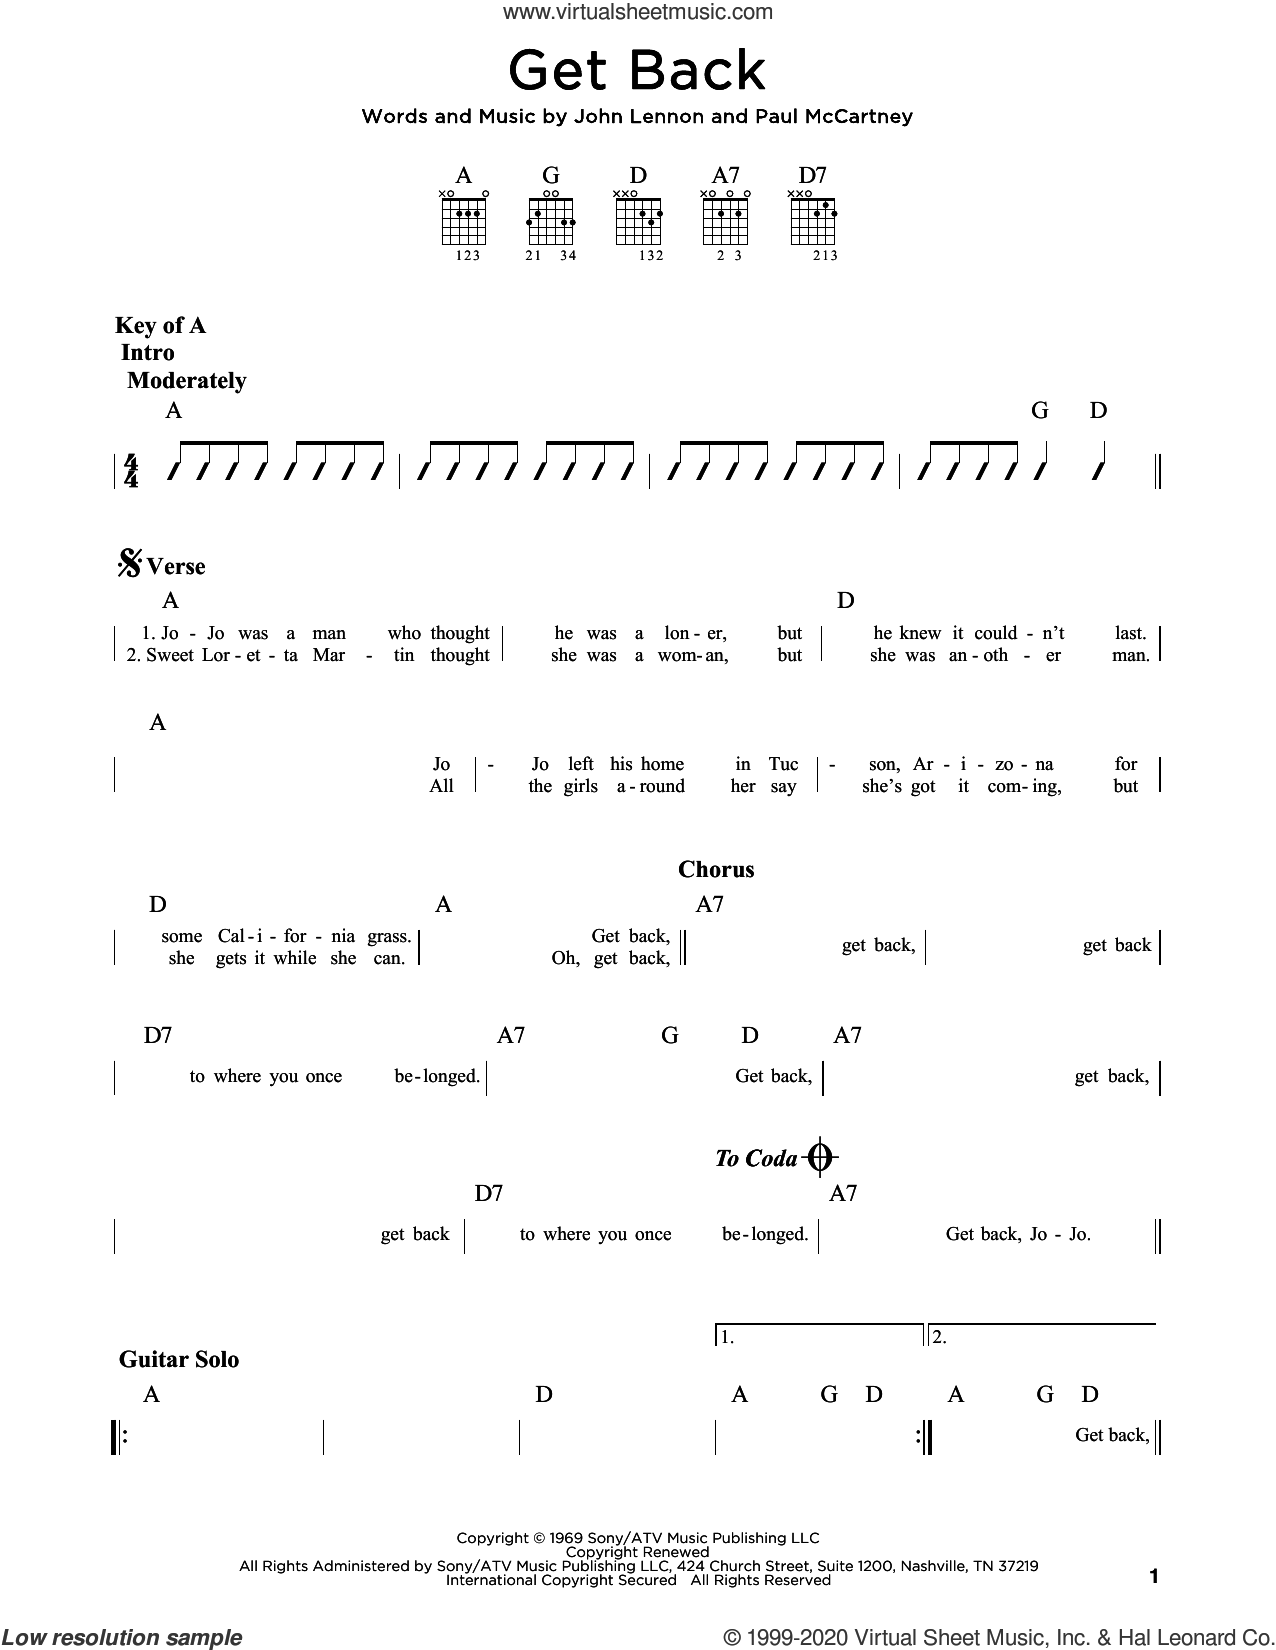 Get Back sheet music for guitar (rhythm tablature) by The Beatles, John Lennon and Paul McCartney, intermediate skill level